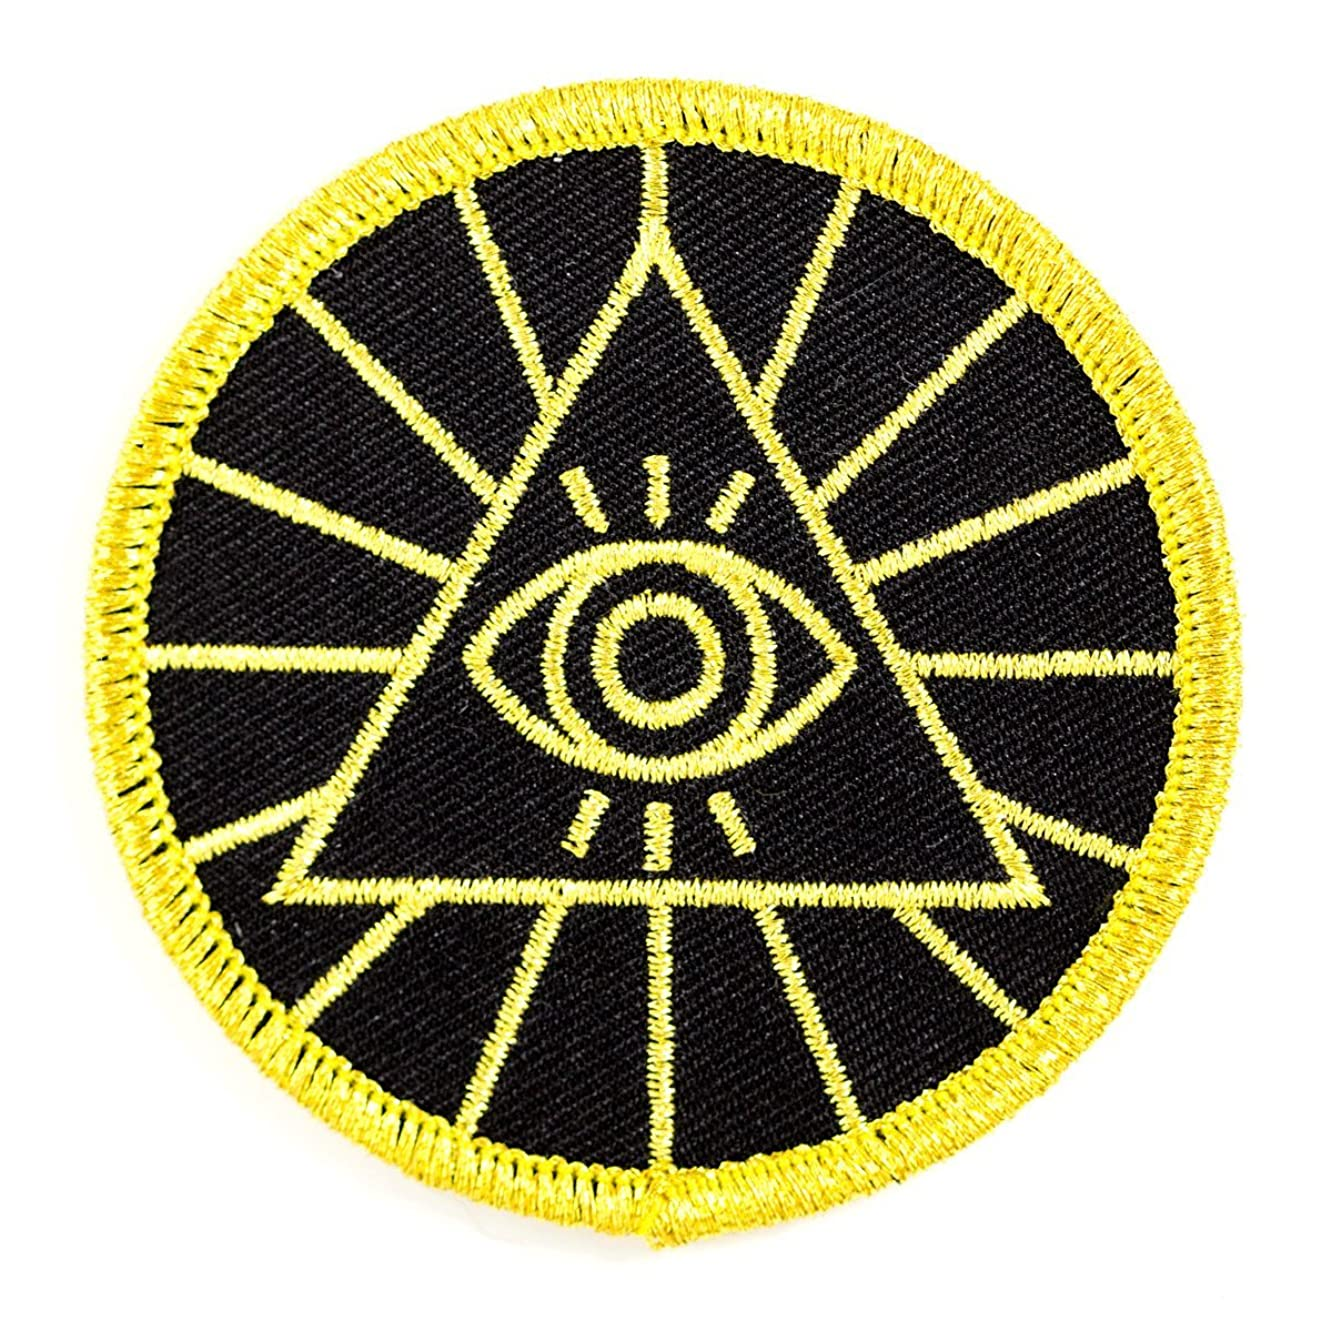 These Are Things Illuminati Embroidered Iron On or Sew On Patch